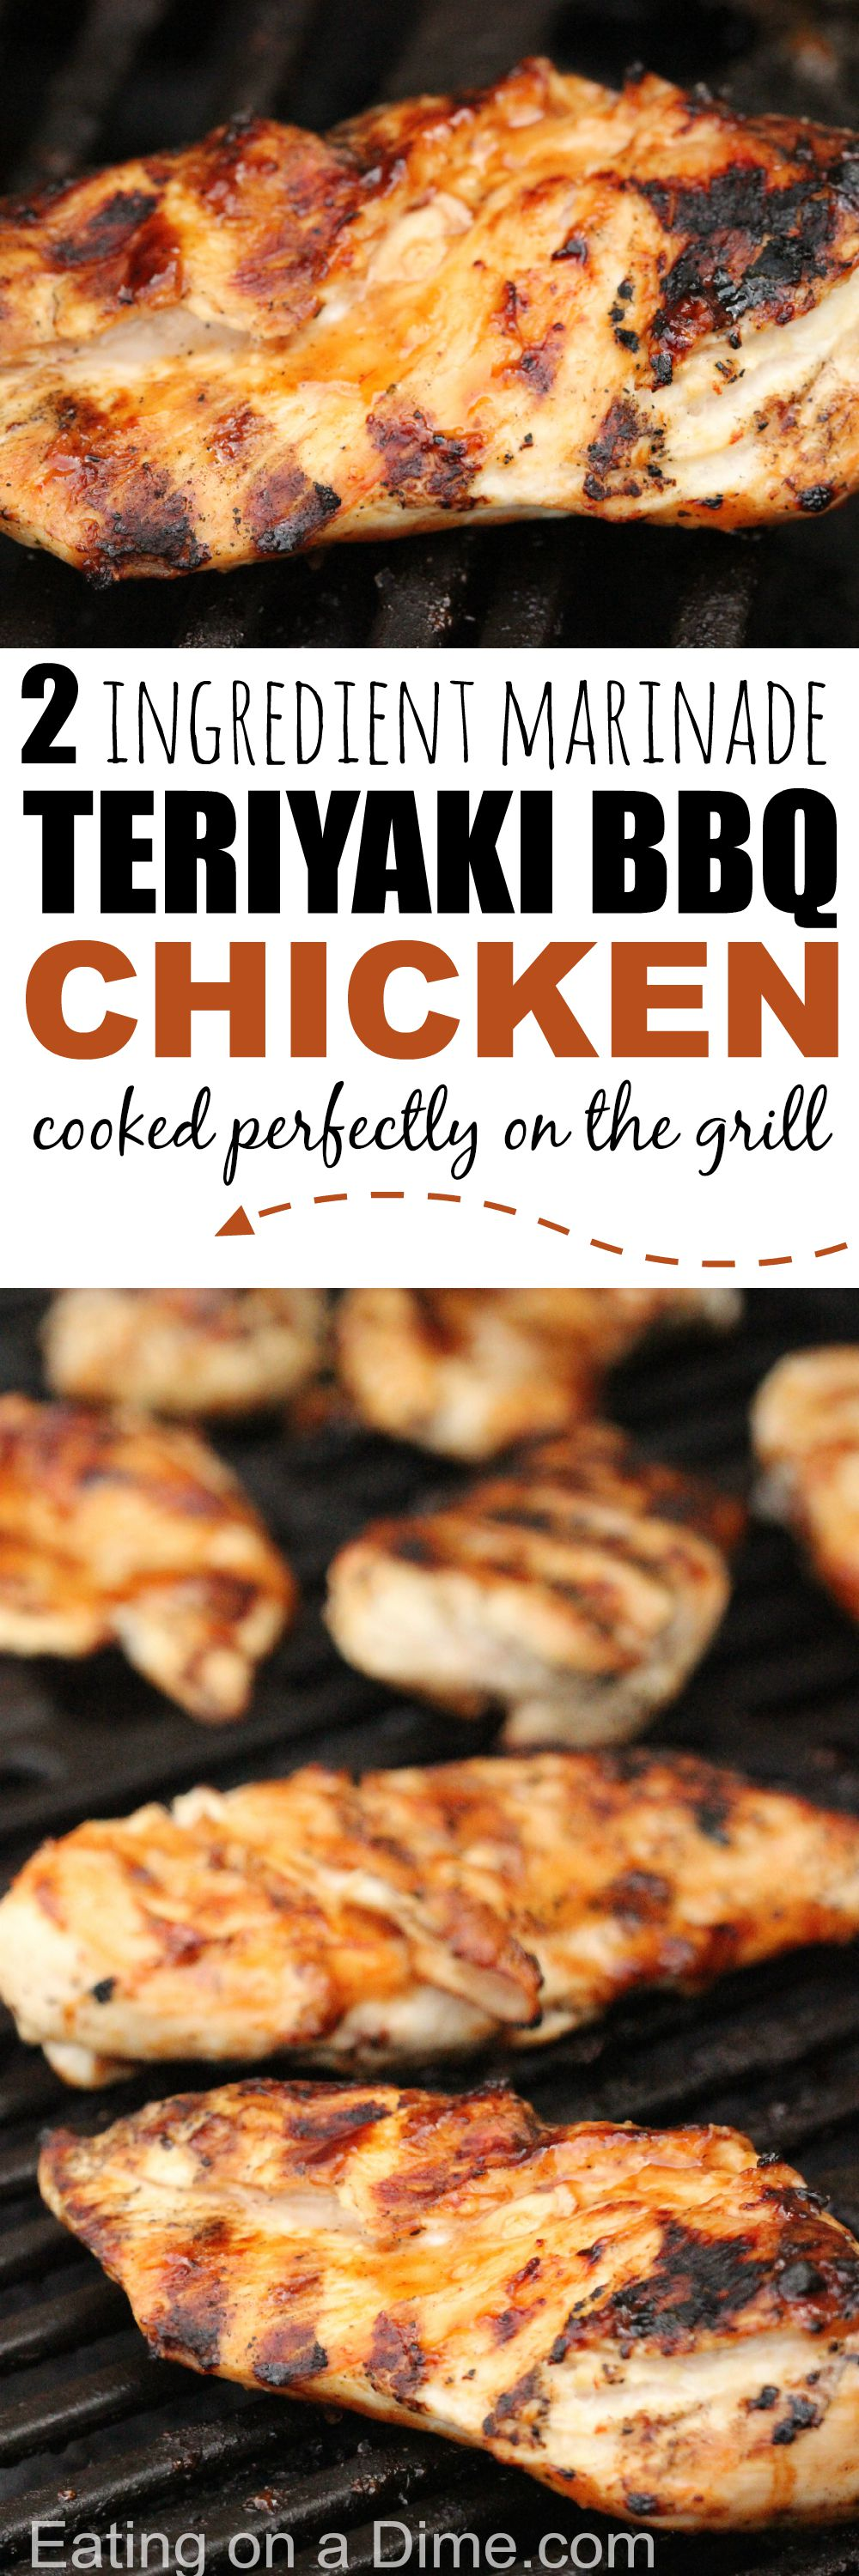 Grilled Teriyaki Chicken with BBQ - Eating on a Dime